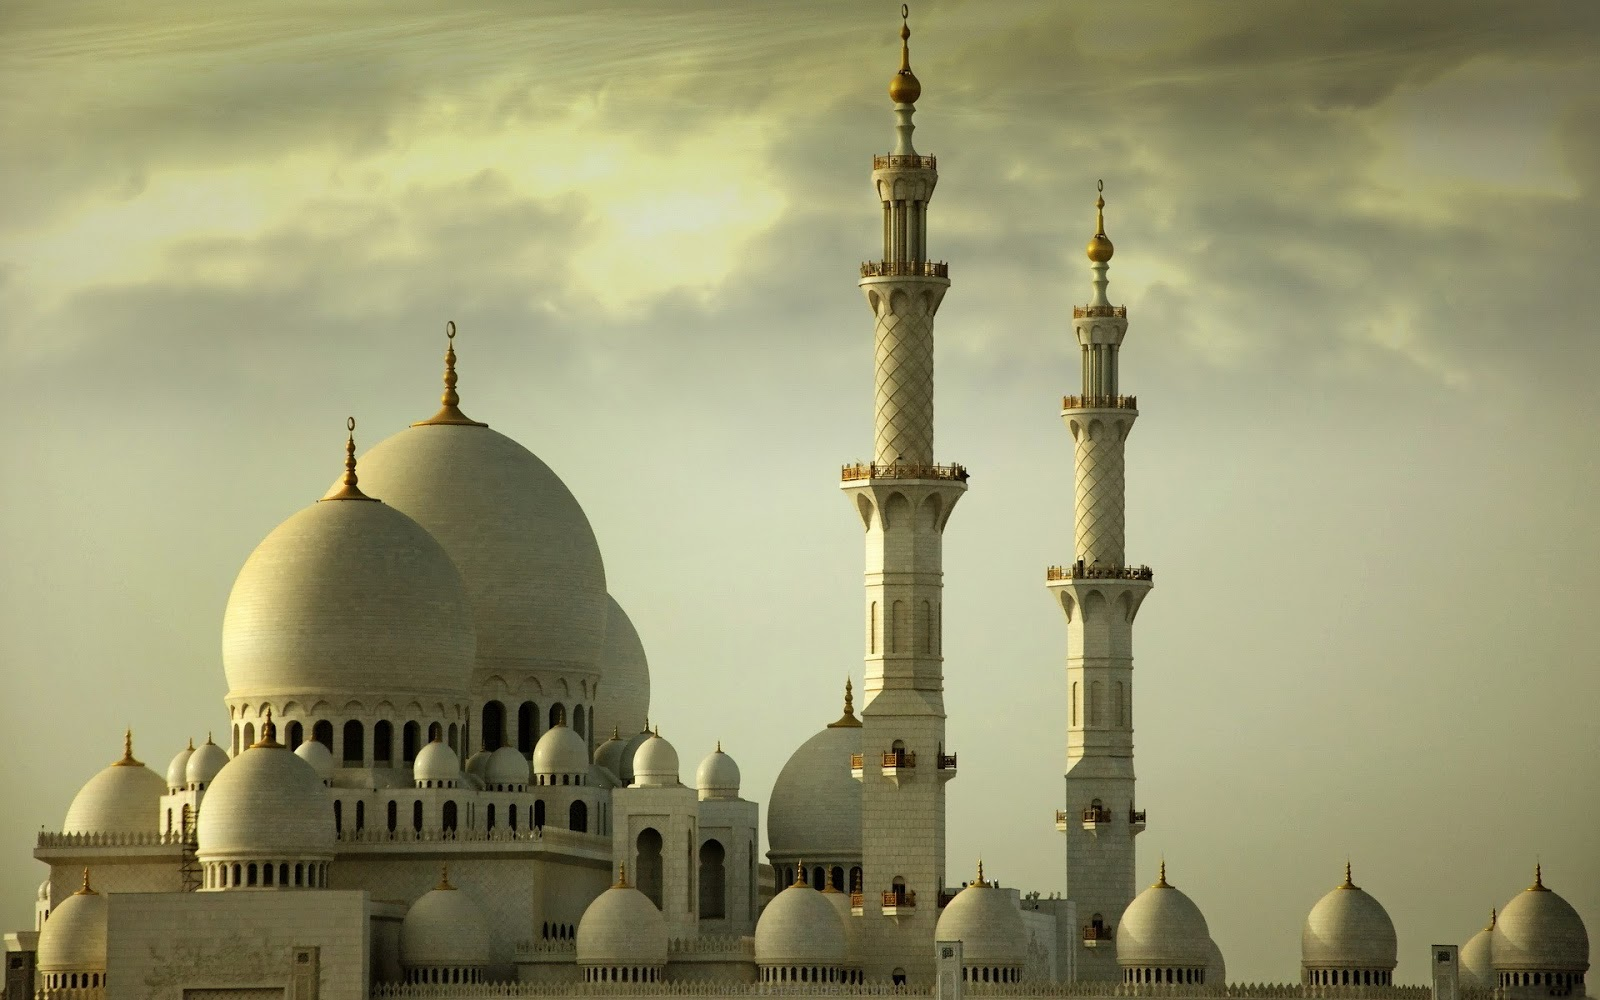 ISLAMIC ARCHITECTURE: WHAT IS ISLAMIC ARCHITECTURE